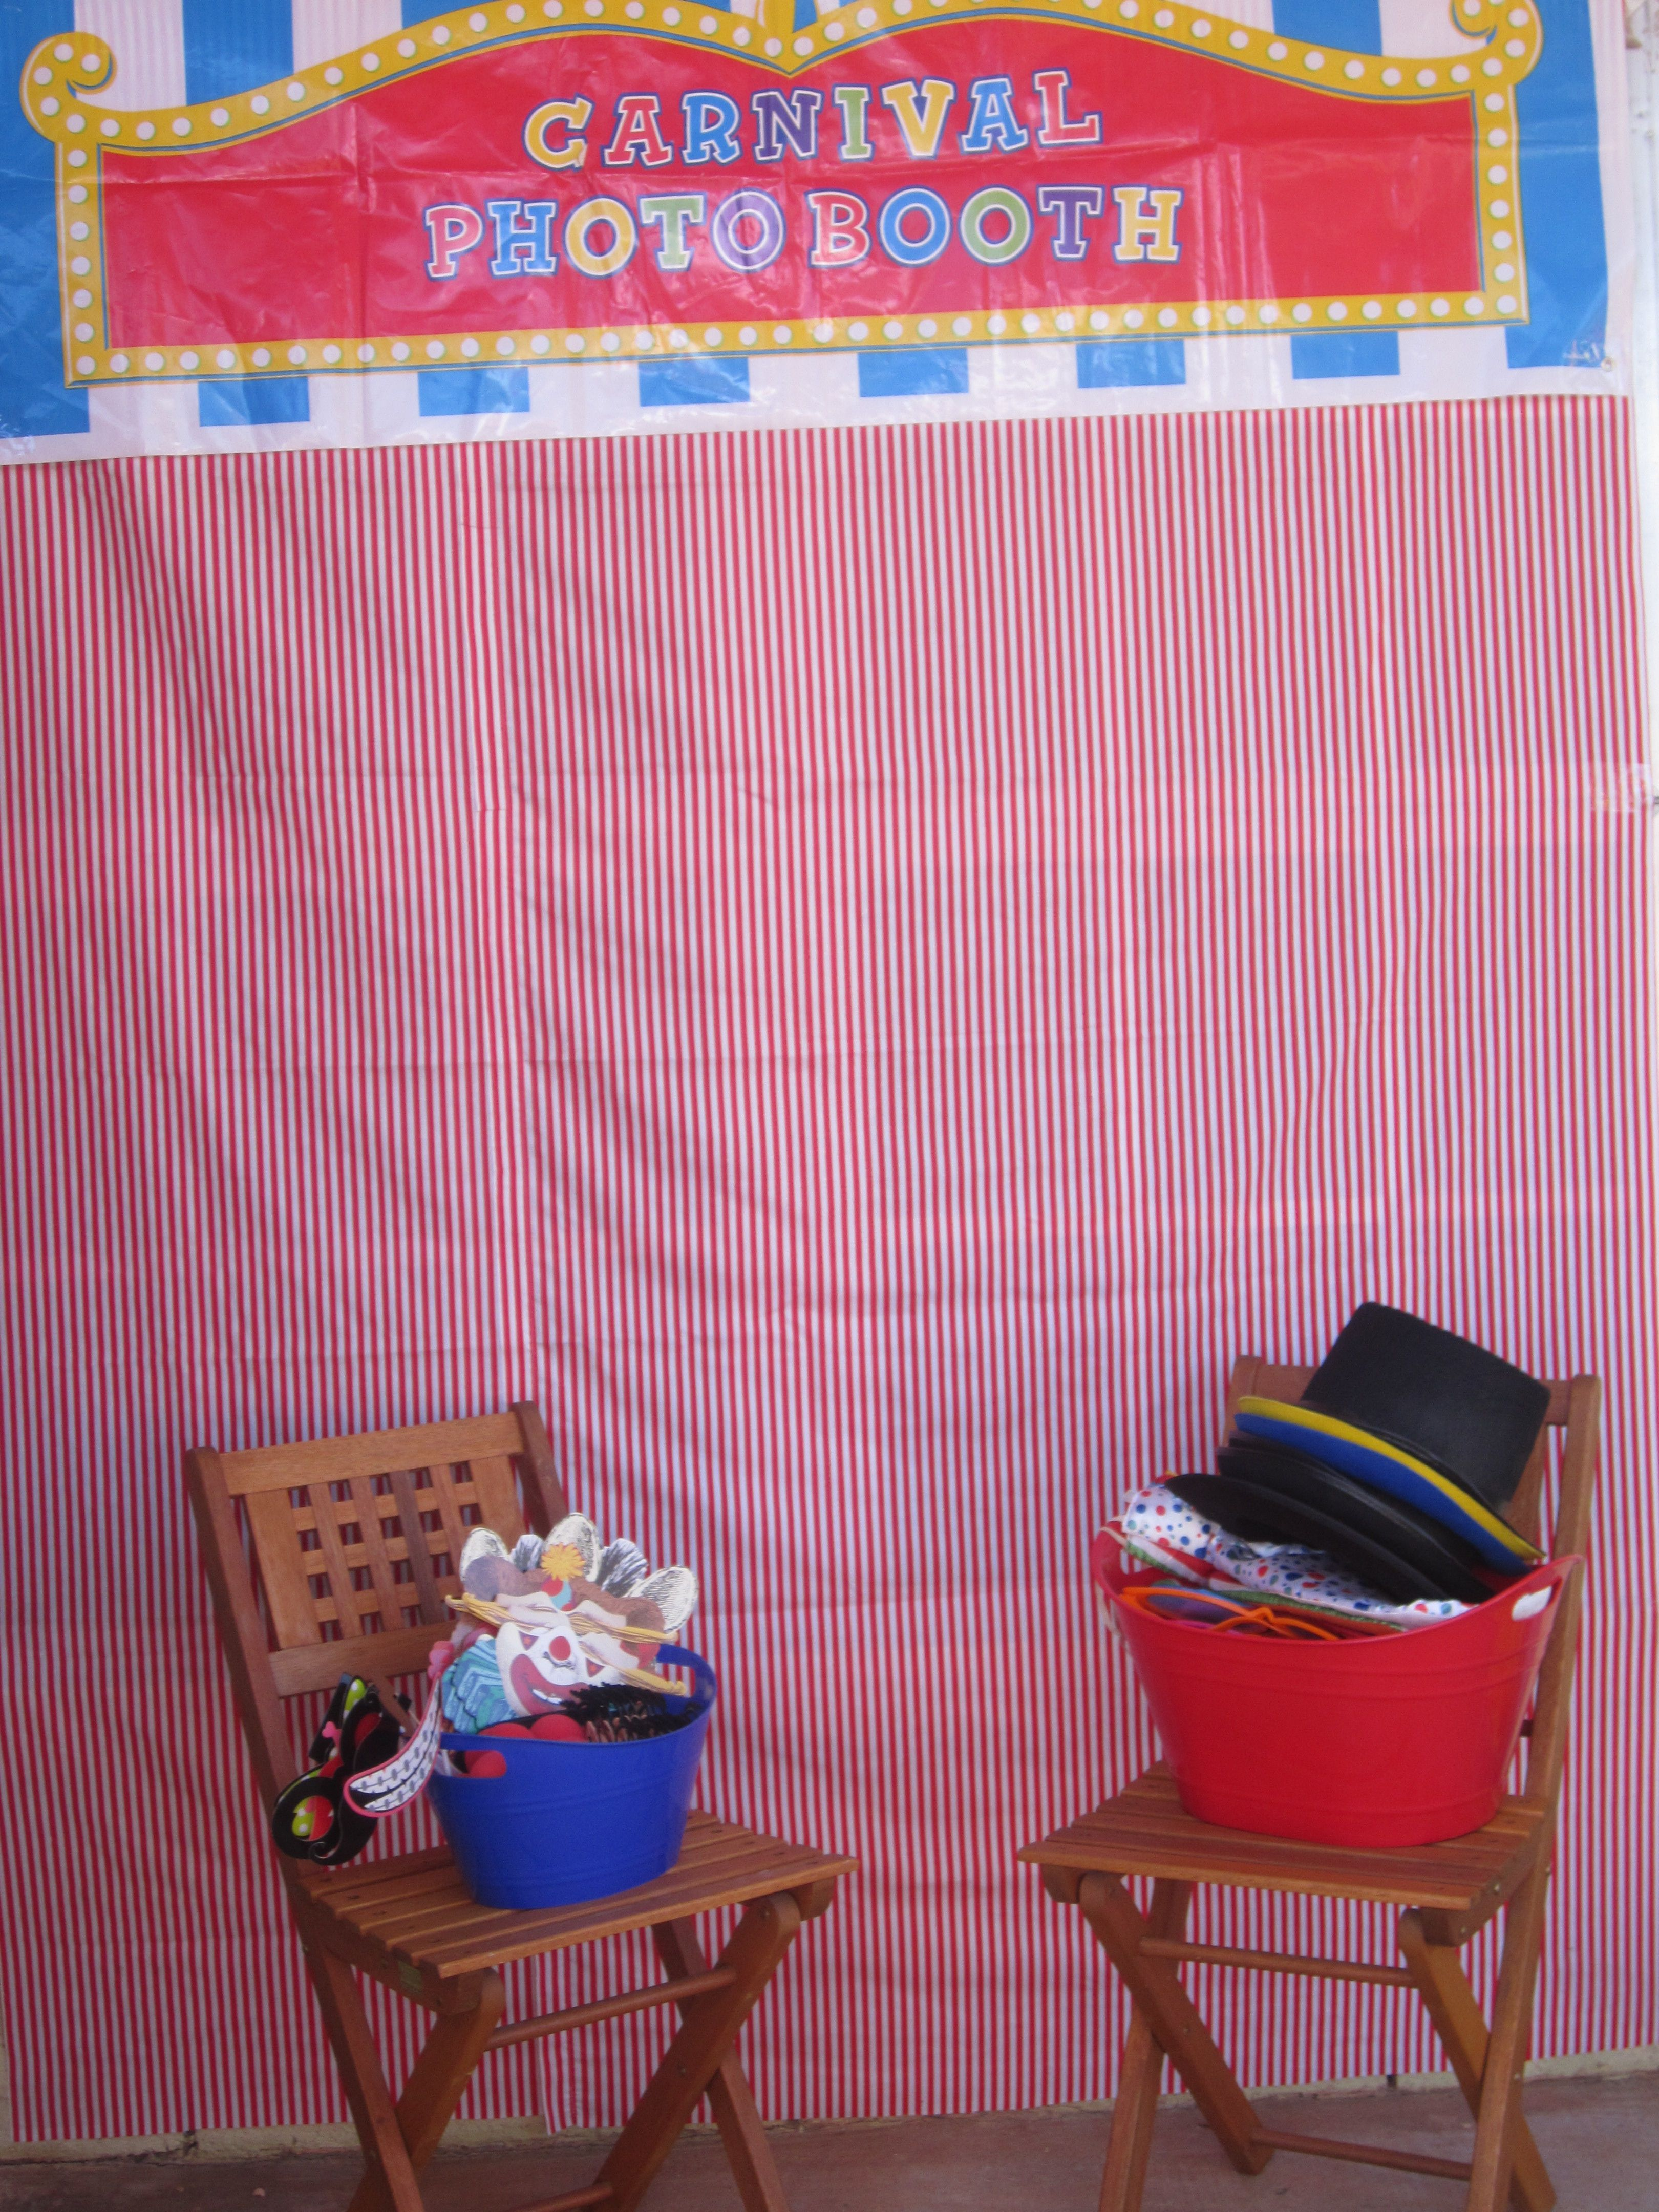 Photo booth back drop n props Fall carnival, Carnival